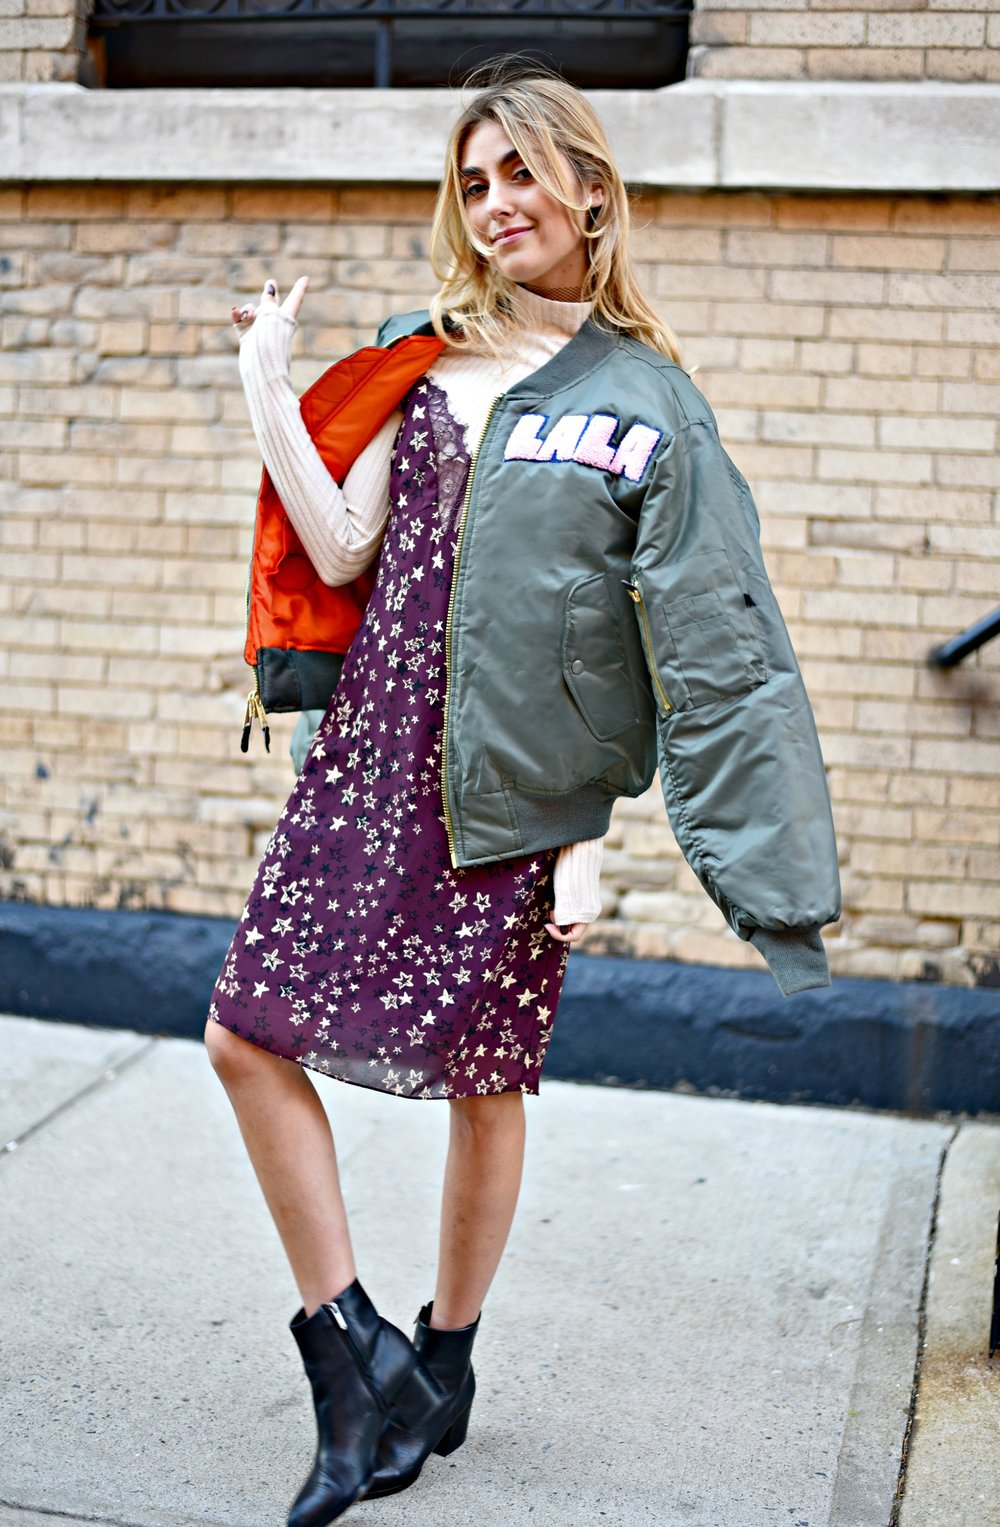 CHARLOTTE BICKLEY YIN 2MY YANG SISTER FASHION BLOGGERS NYC UNEMPLOYED DENIM PERSONALIZED BOMBER JACKET POST 4.jpg